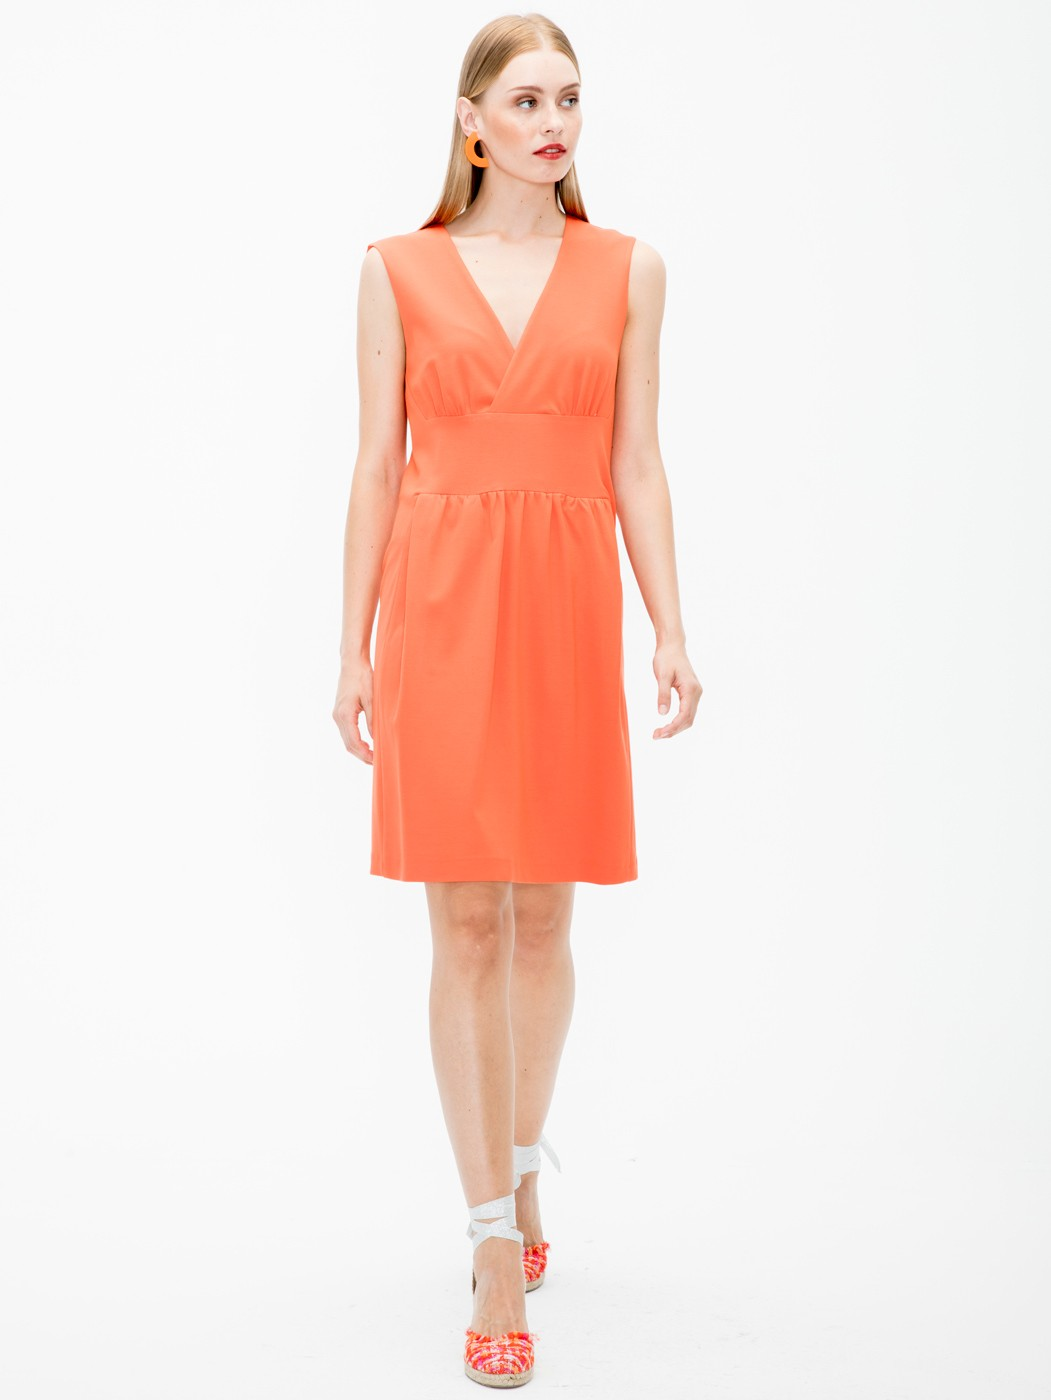 MANDIE DRESS ORANGE KN